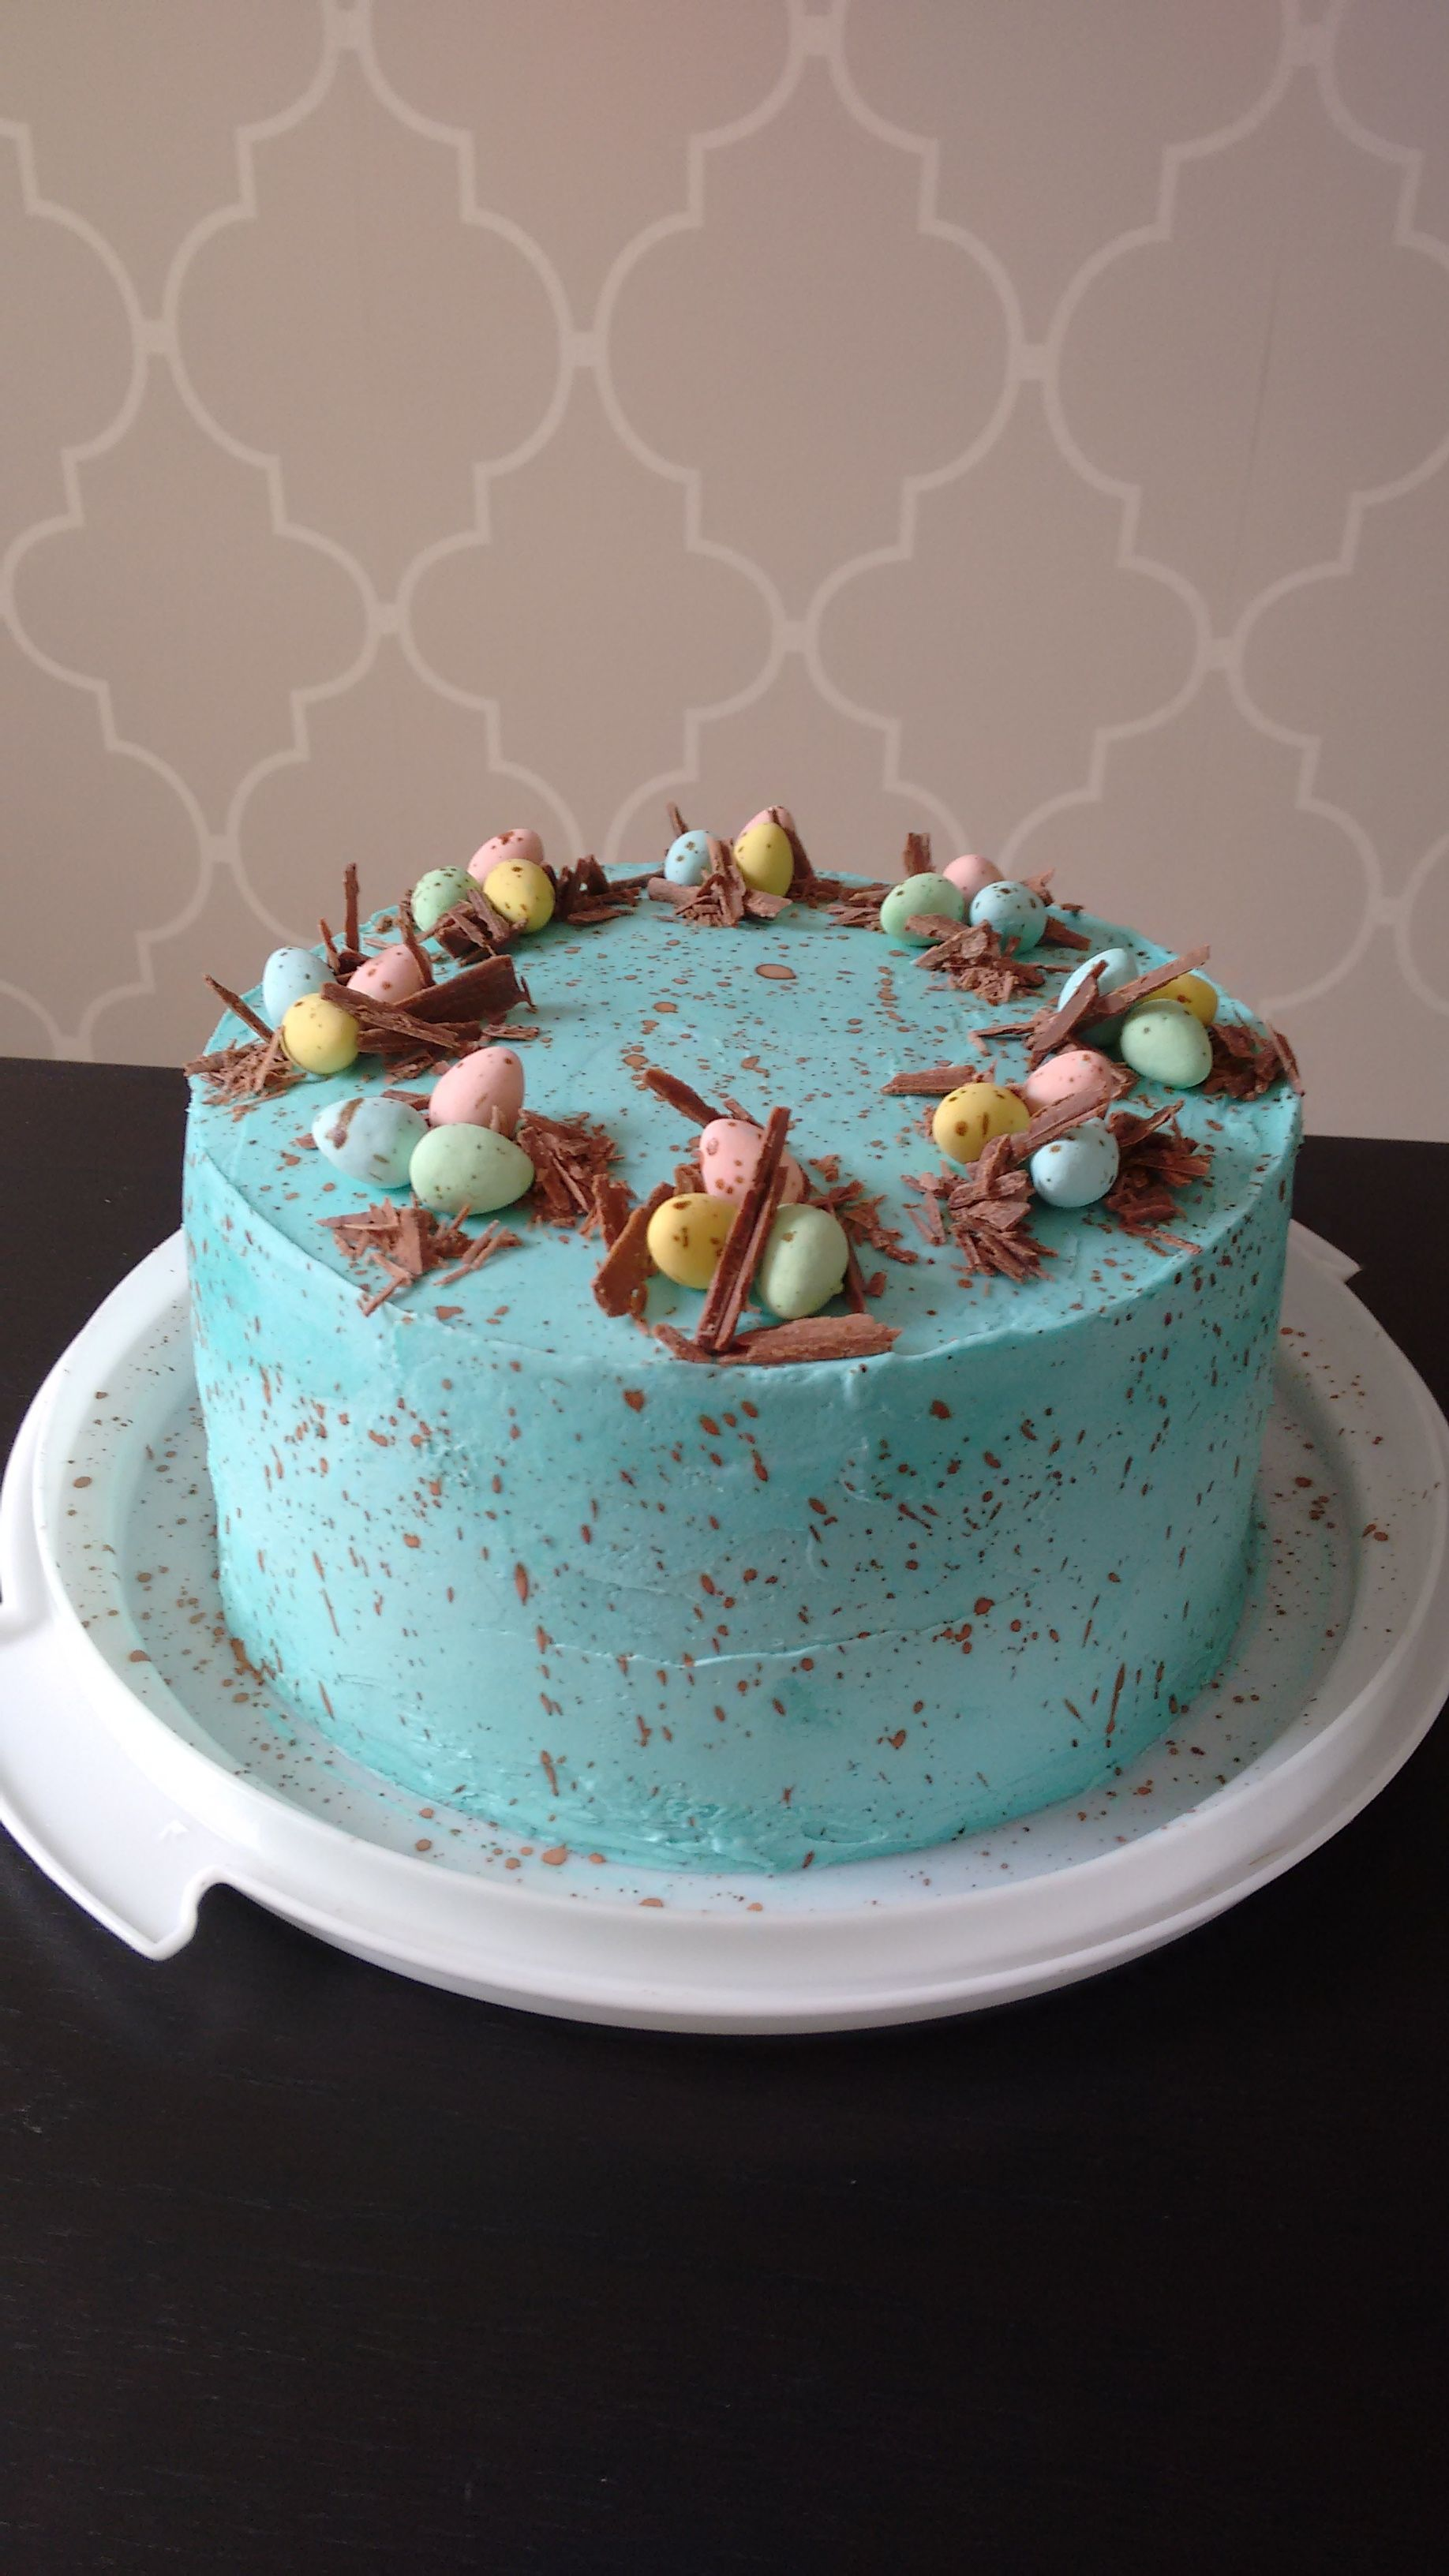 Speckled Easter Egg Chocolate Cake: Readers share their ...